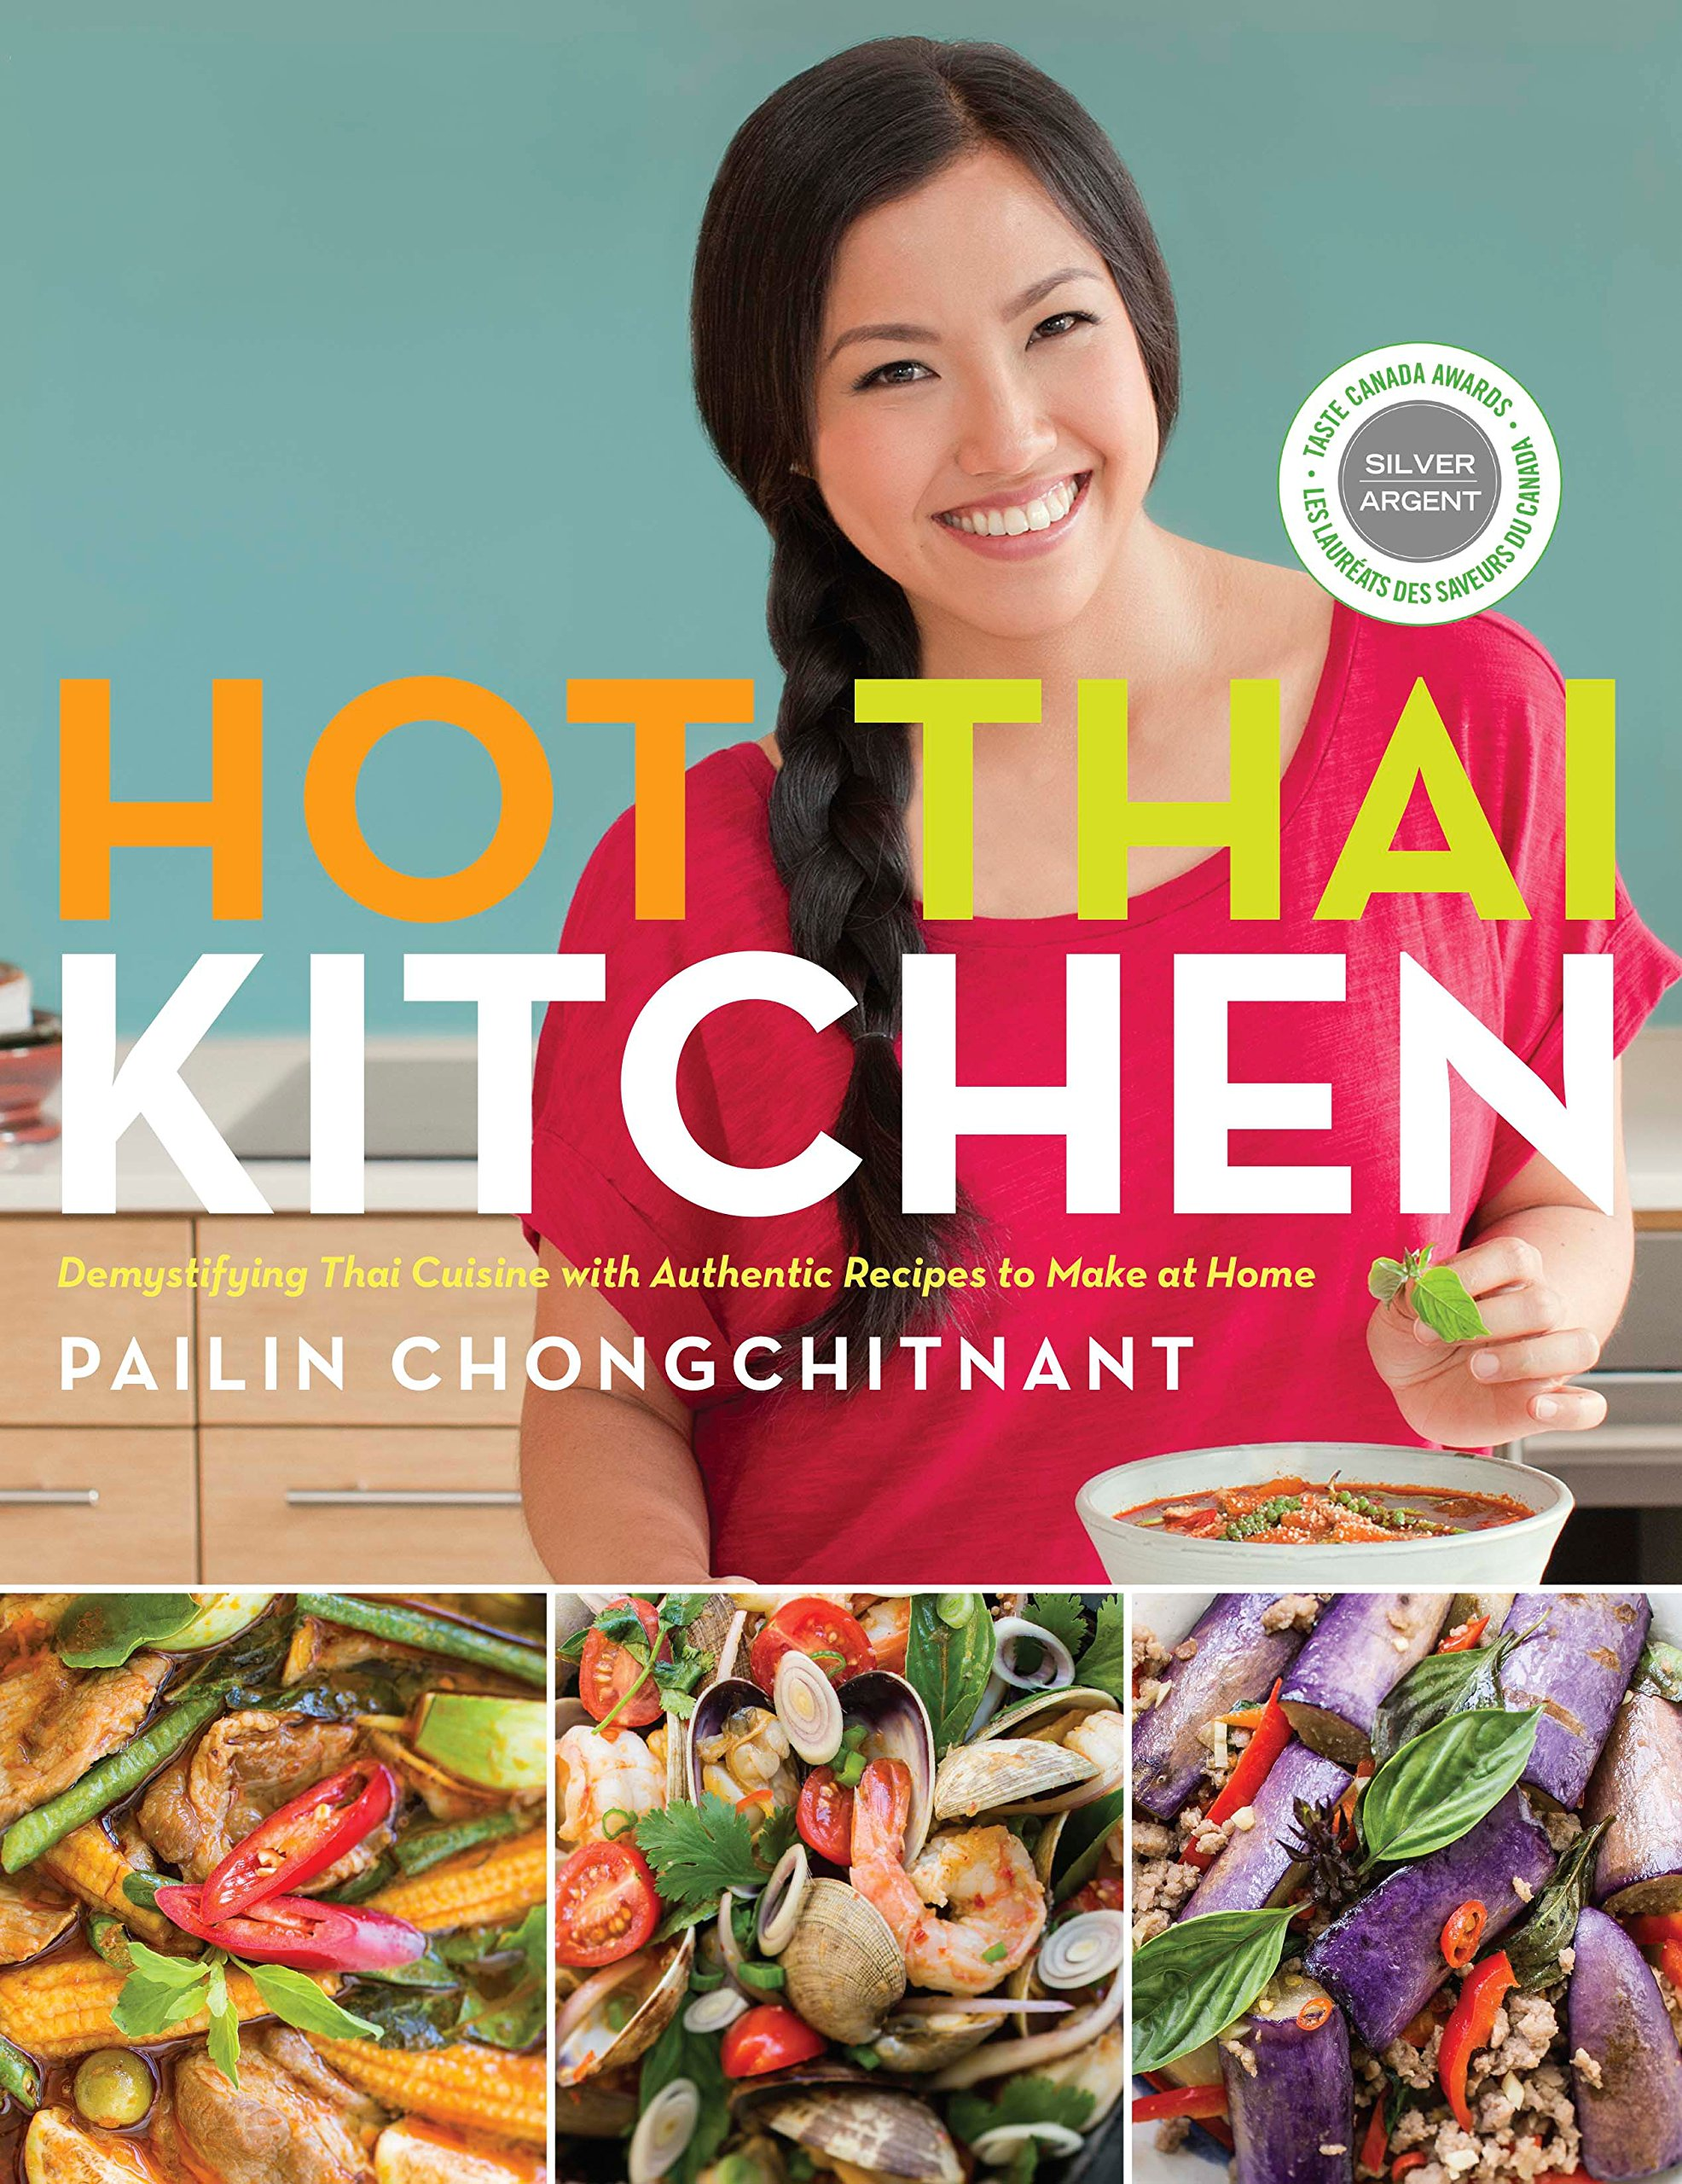 Maangchis real korean cooking authentic dishes for the home cook hot thai kitchen demystifying thai cuisine with authentic recipes to make at home forumfinder Choice Image